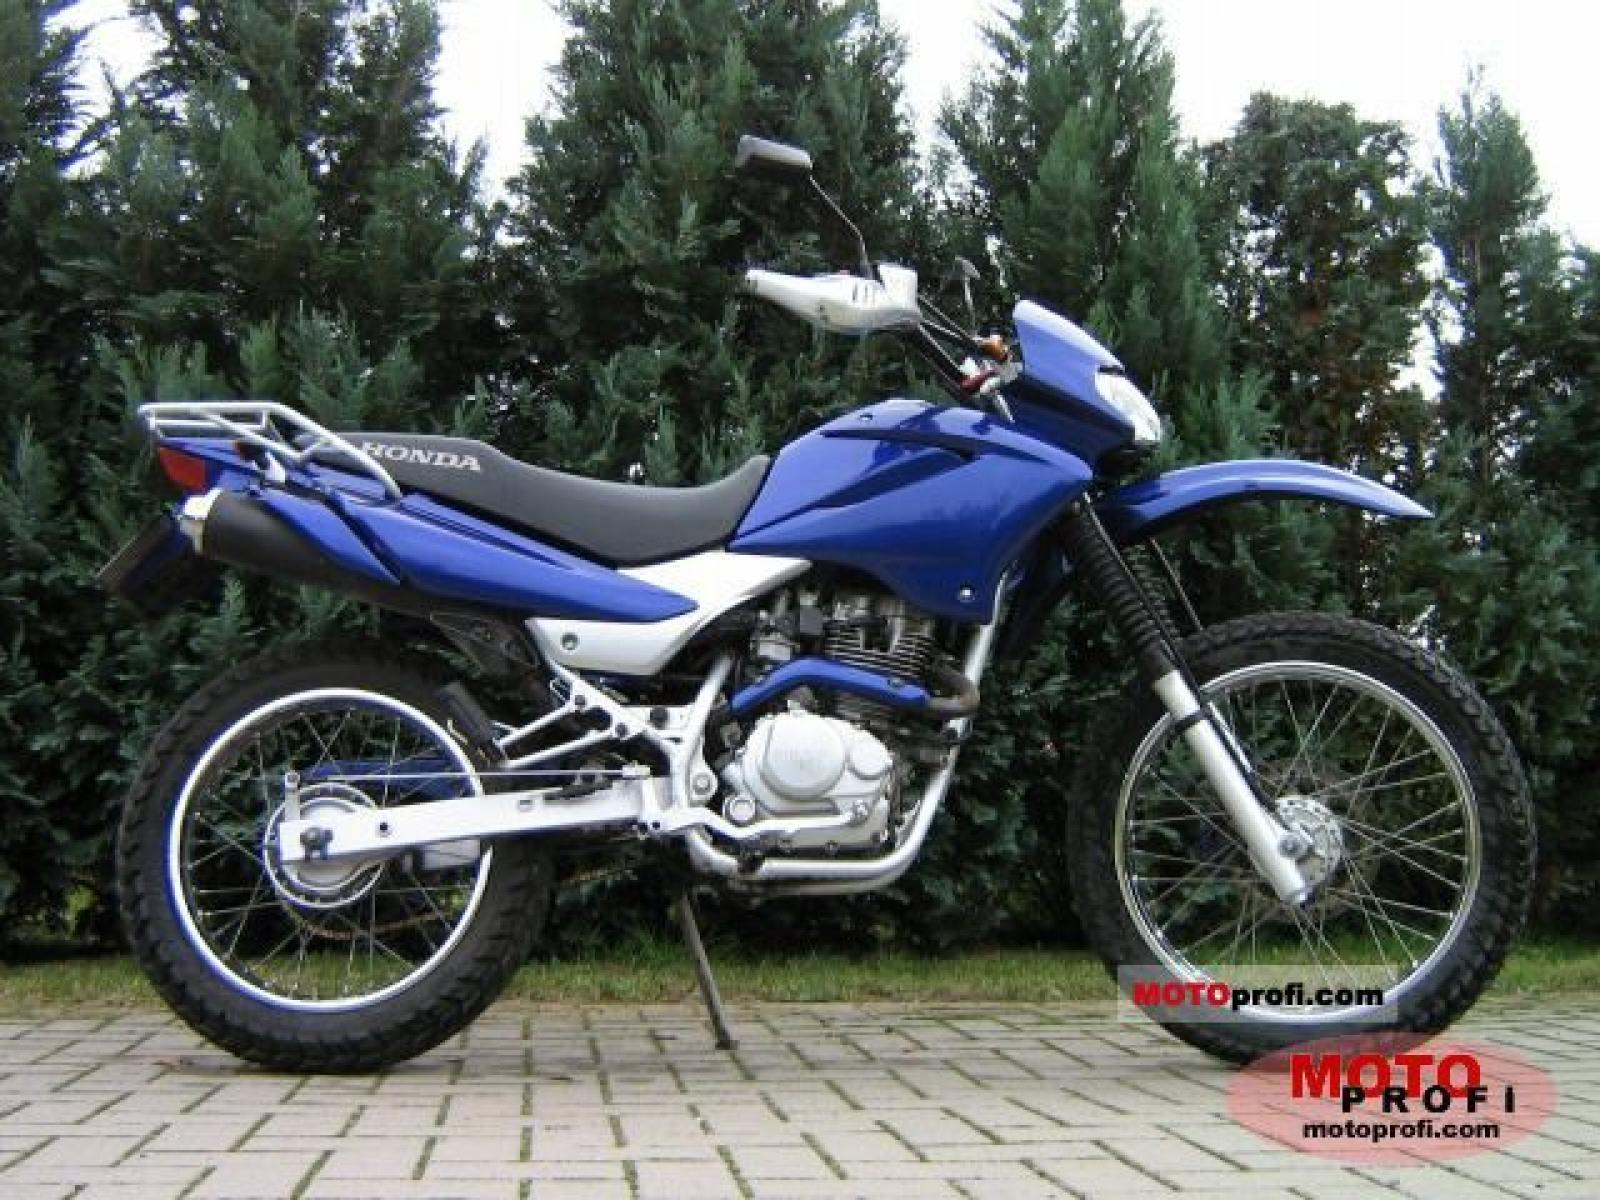 honda xr125l motorcycle review side view Array - honda xr 125 l manual rh honda  xr 125 l manual logoutev de